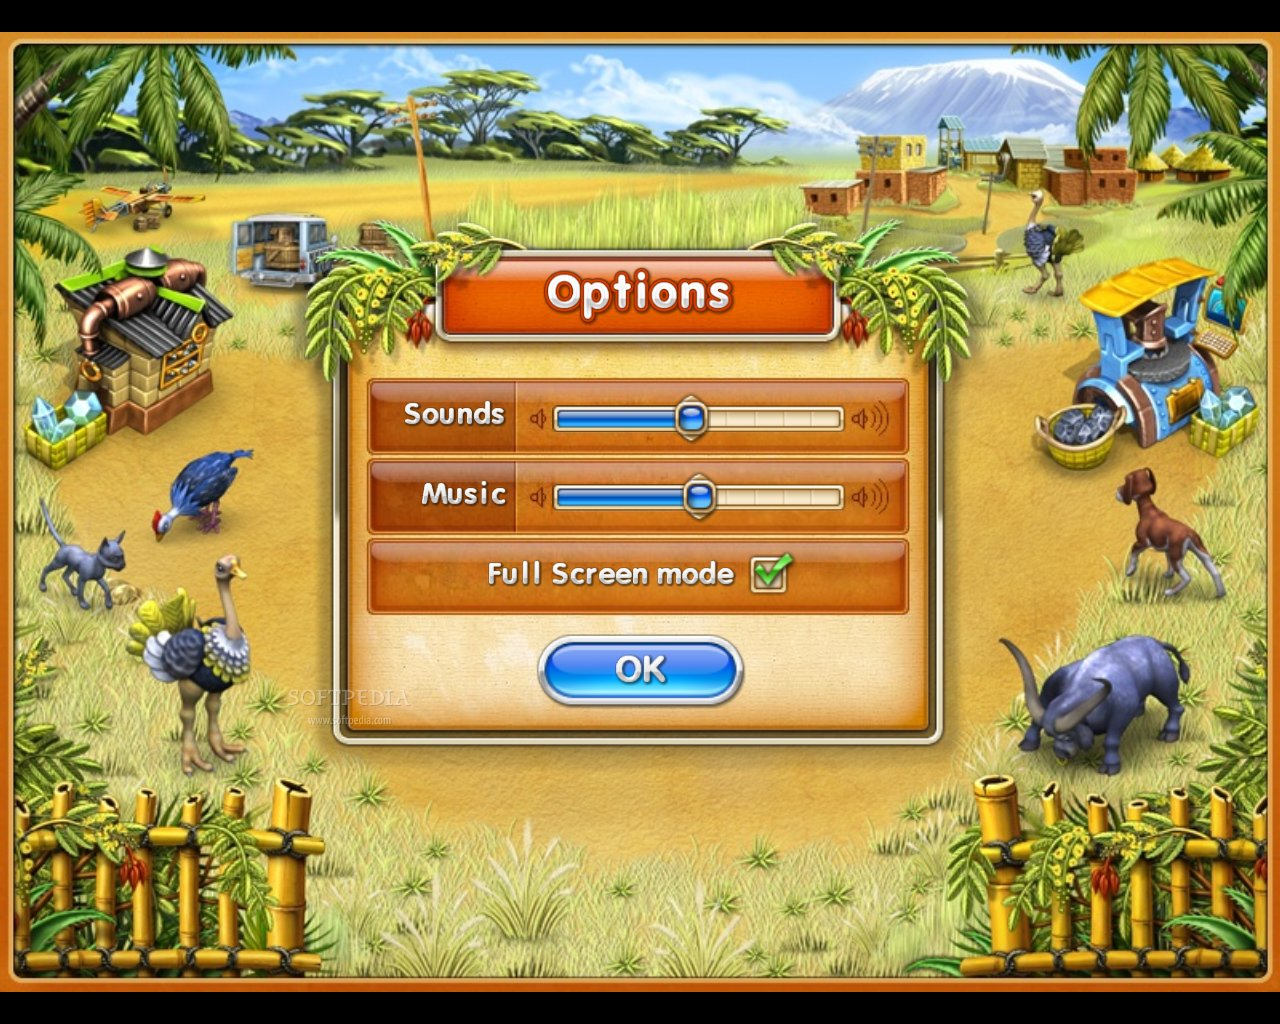 Farm frenzy 2 free download full version for android | Download Free